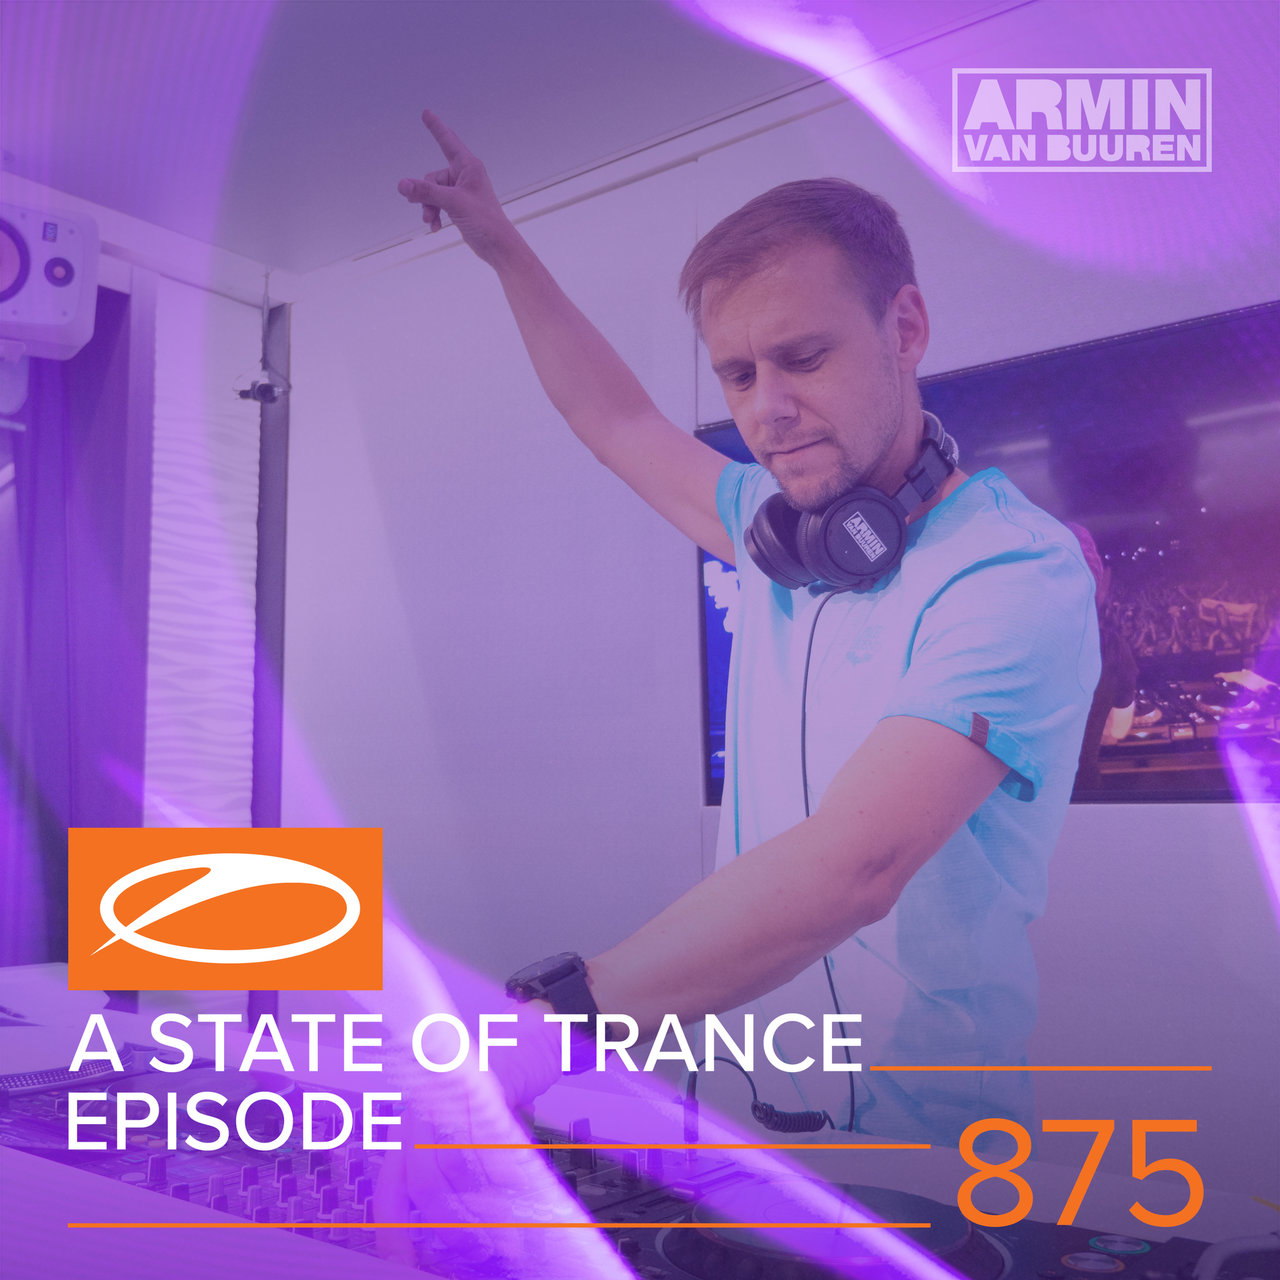 A State Of Trance Episode 875